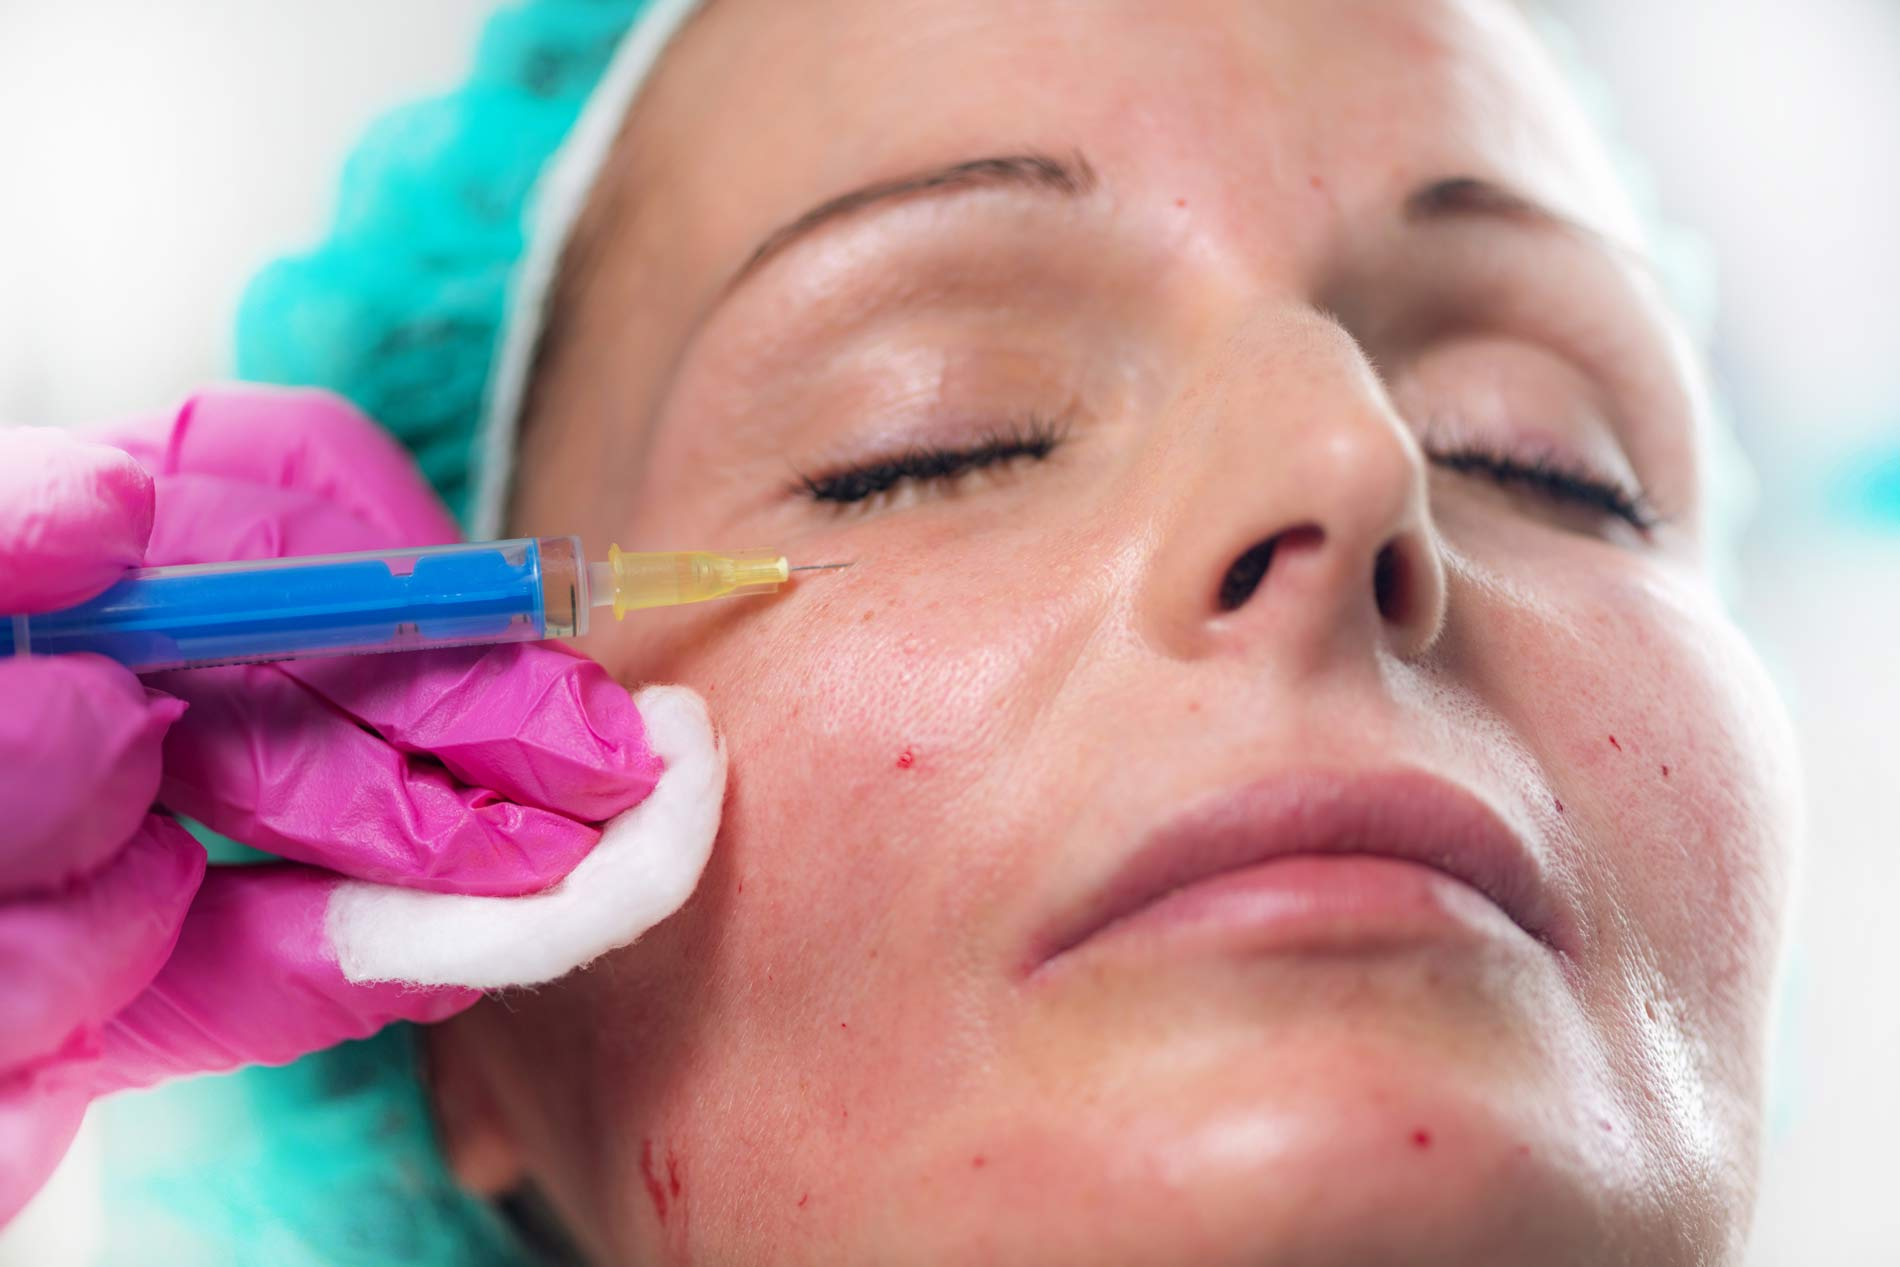 The anti-ageing superpowers offered by anti-wrinkle injections